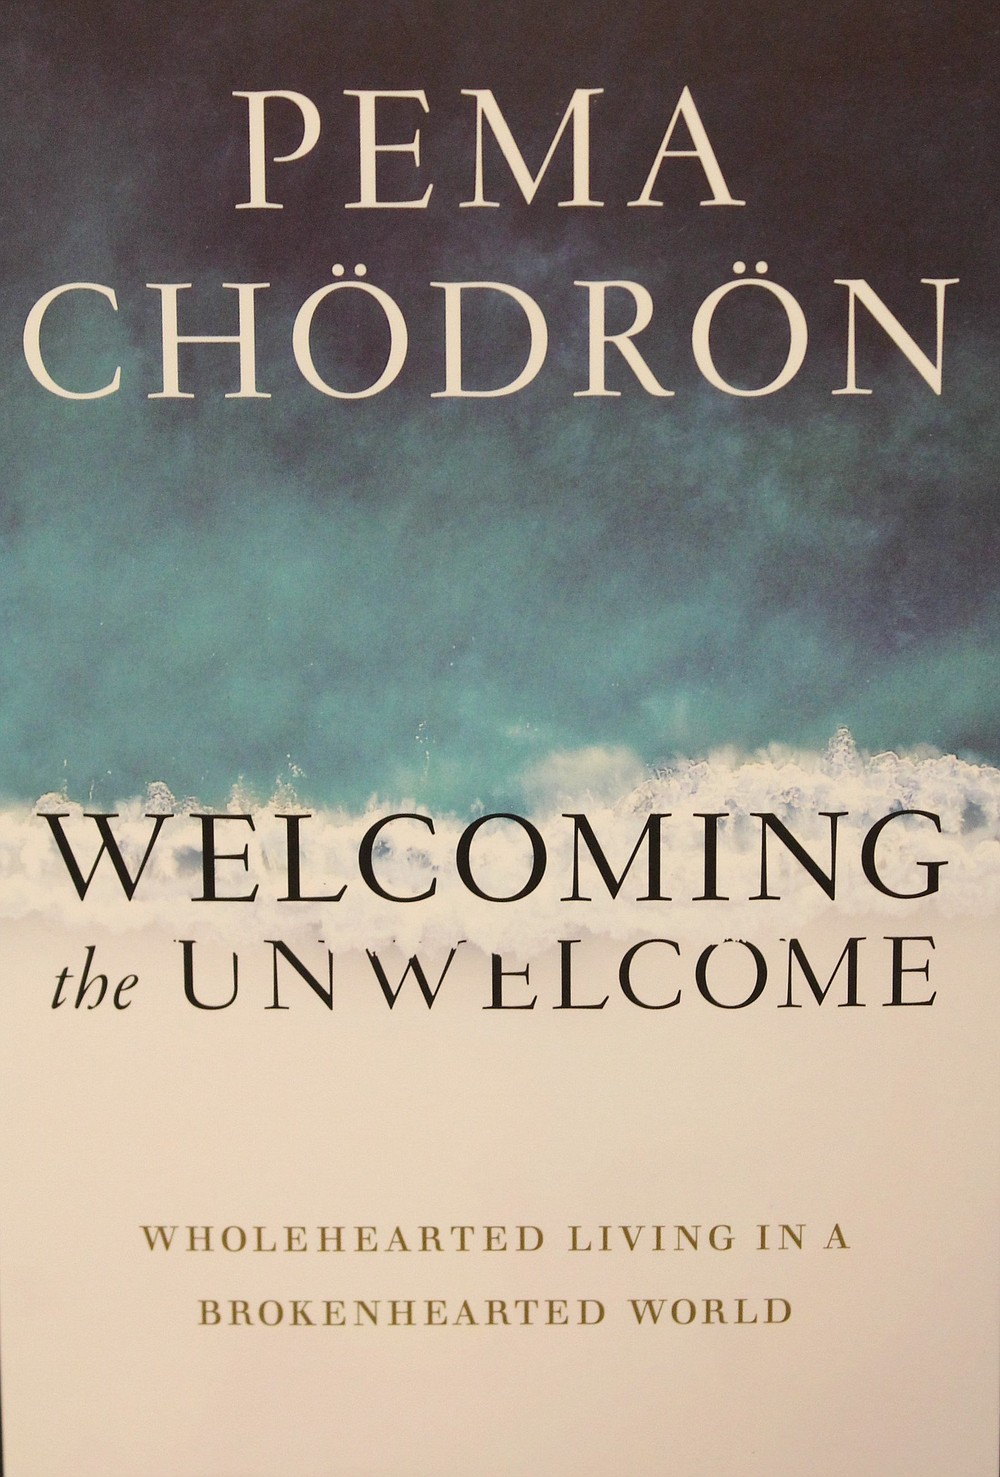 Welcoming the Unwelcome - Wholehearted Living in a Brokenhearted World by Pema Chodron